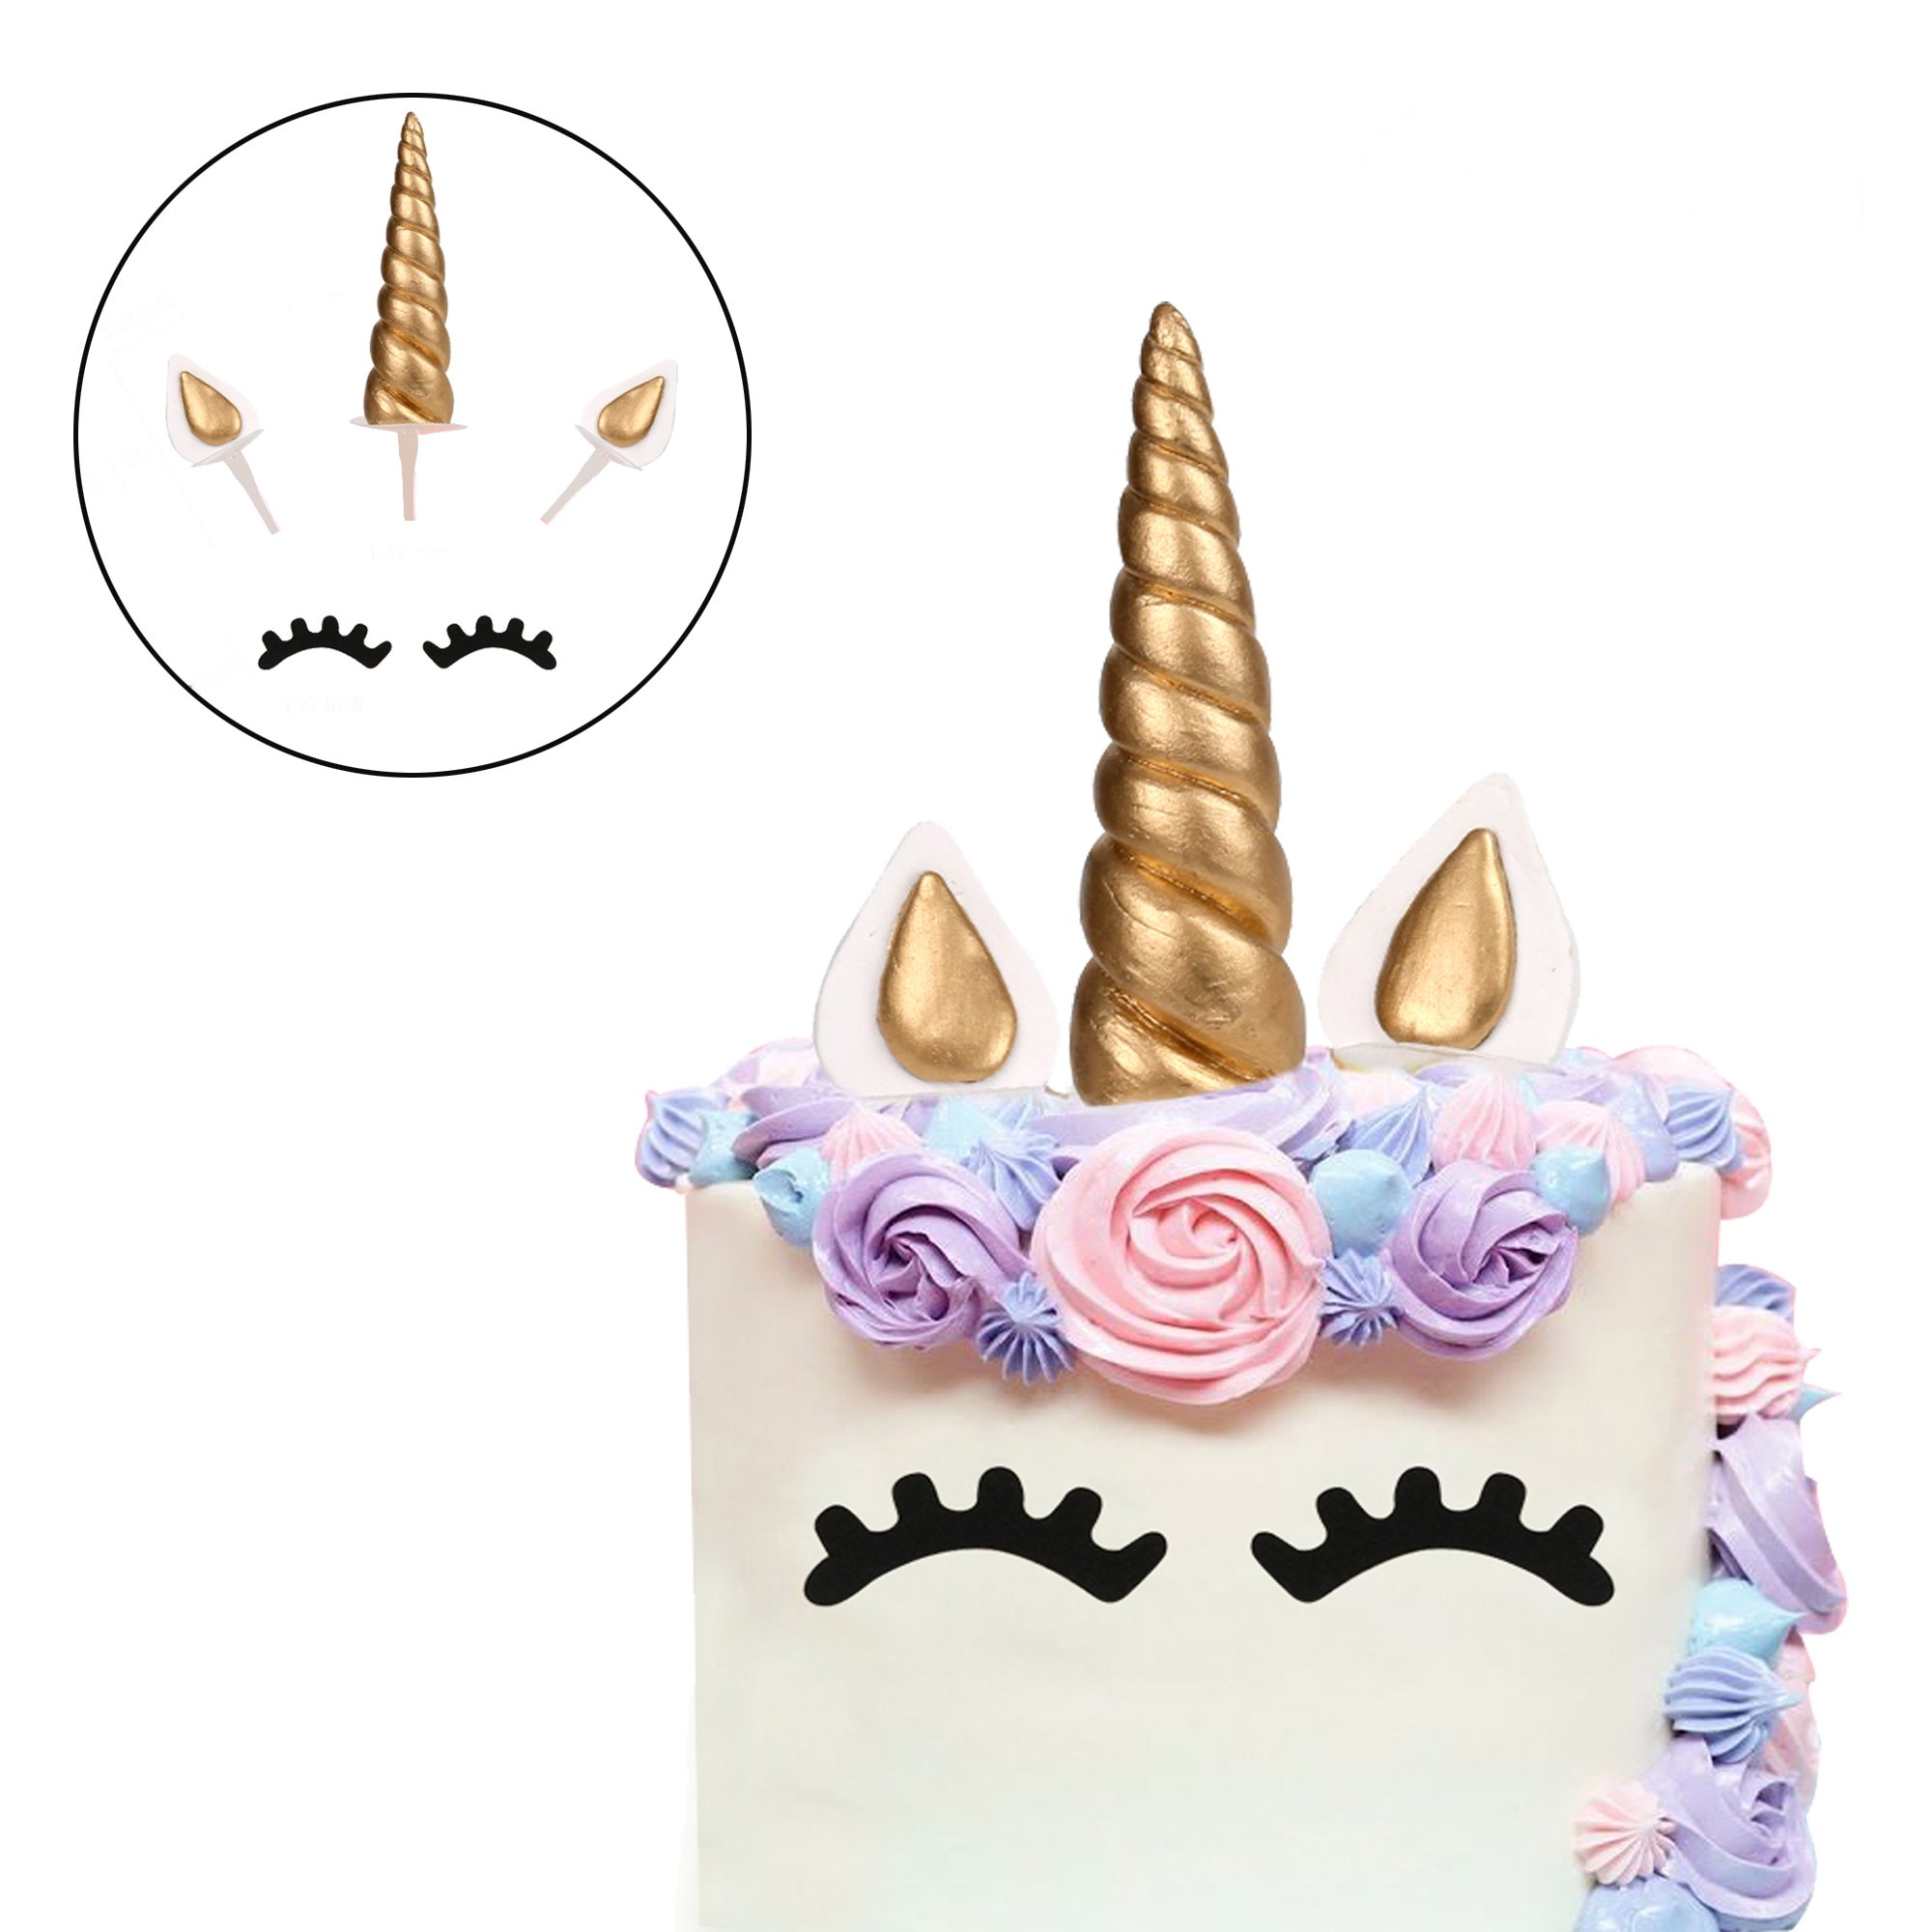 Cake Topper, LUTER Bigger Size Handmade Gold Unicorn Birthday Cake Topper, Reusable Unicorn Horn, Ears and Eyelash Set, Unicorn Party Decoration for Birthday Party, Baby Shower and Wedding (Set of 5)